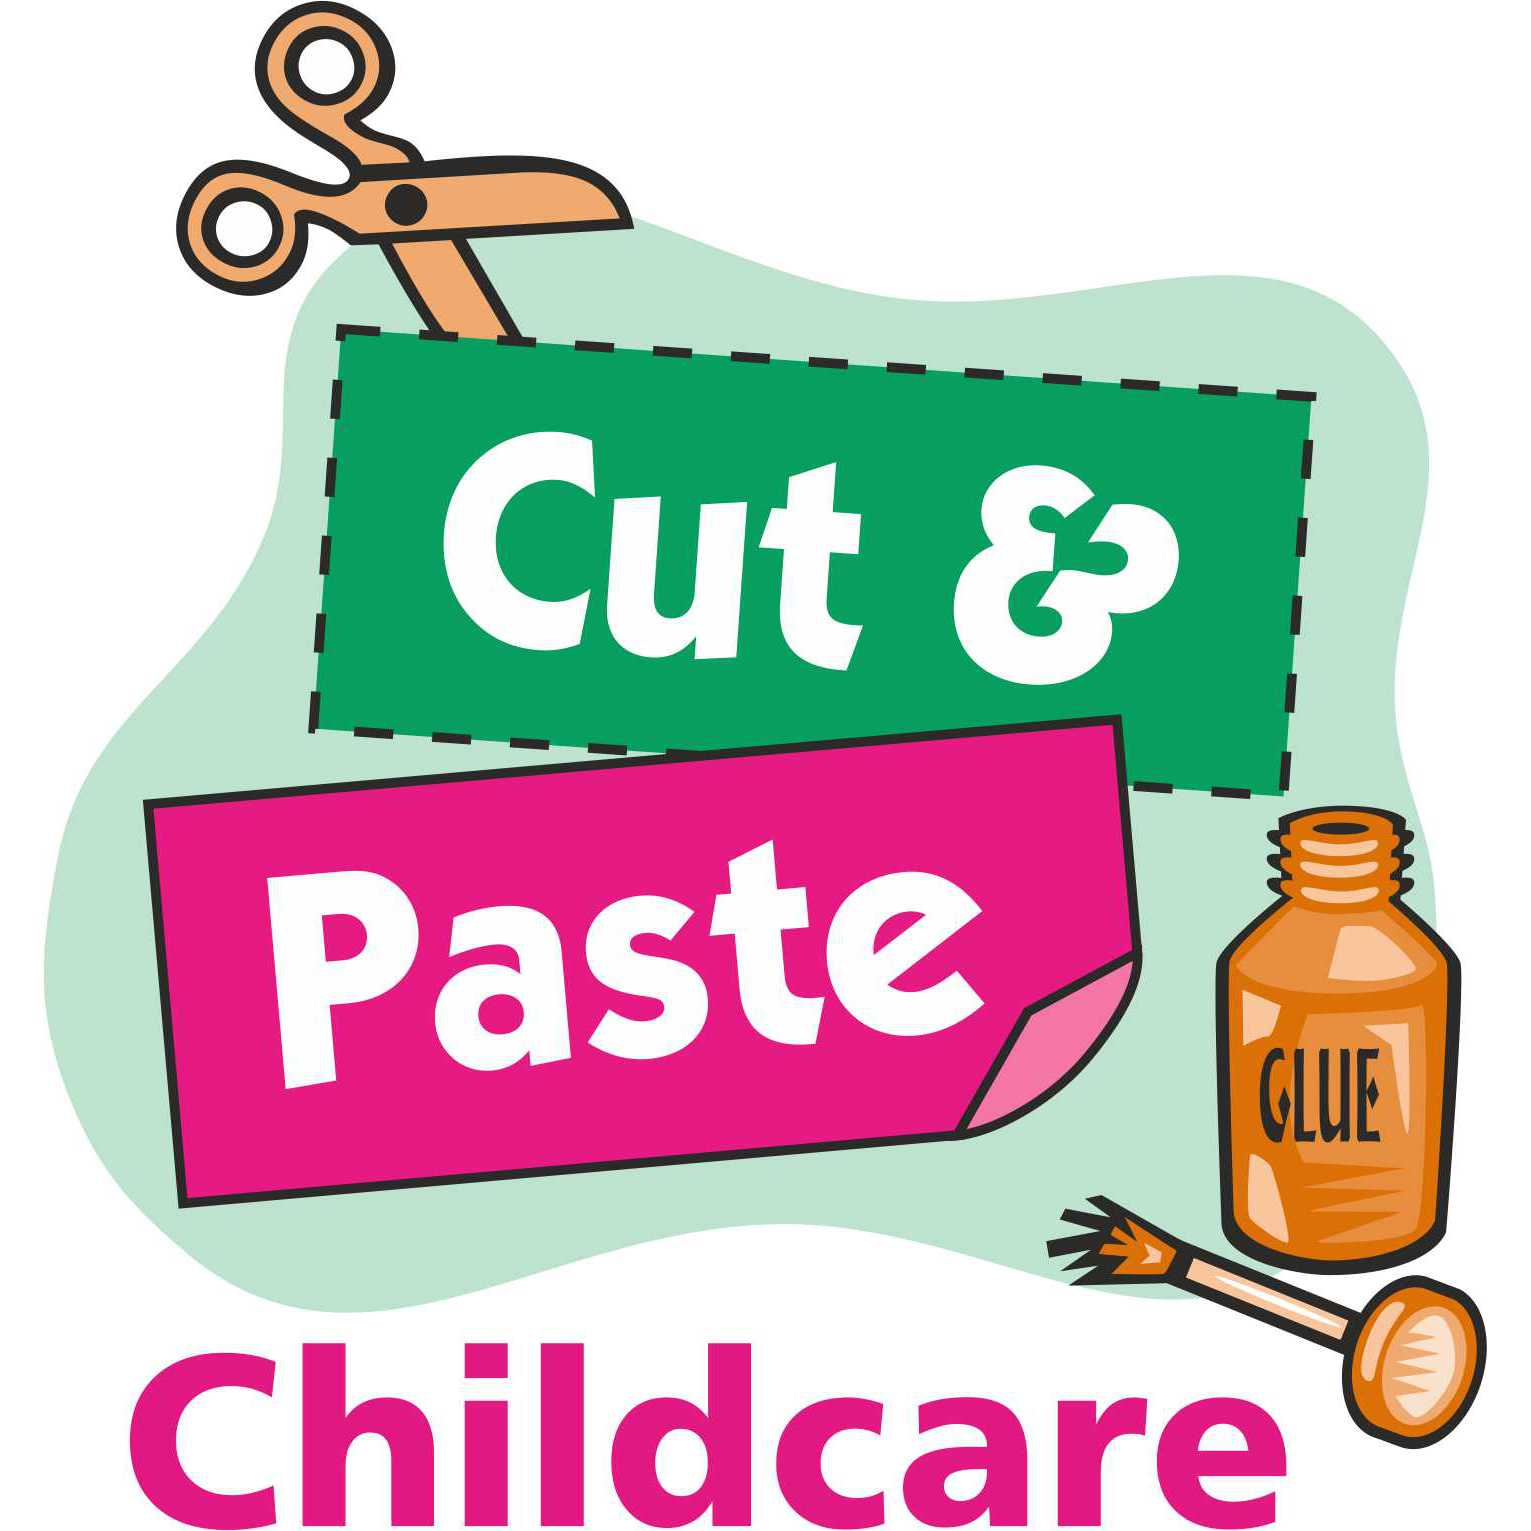 Cut And Paste Childcare - Hereford, Herefordshire HR2 6HQ - 07779 608424 | ShowMeLocal.com